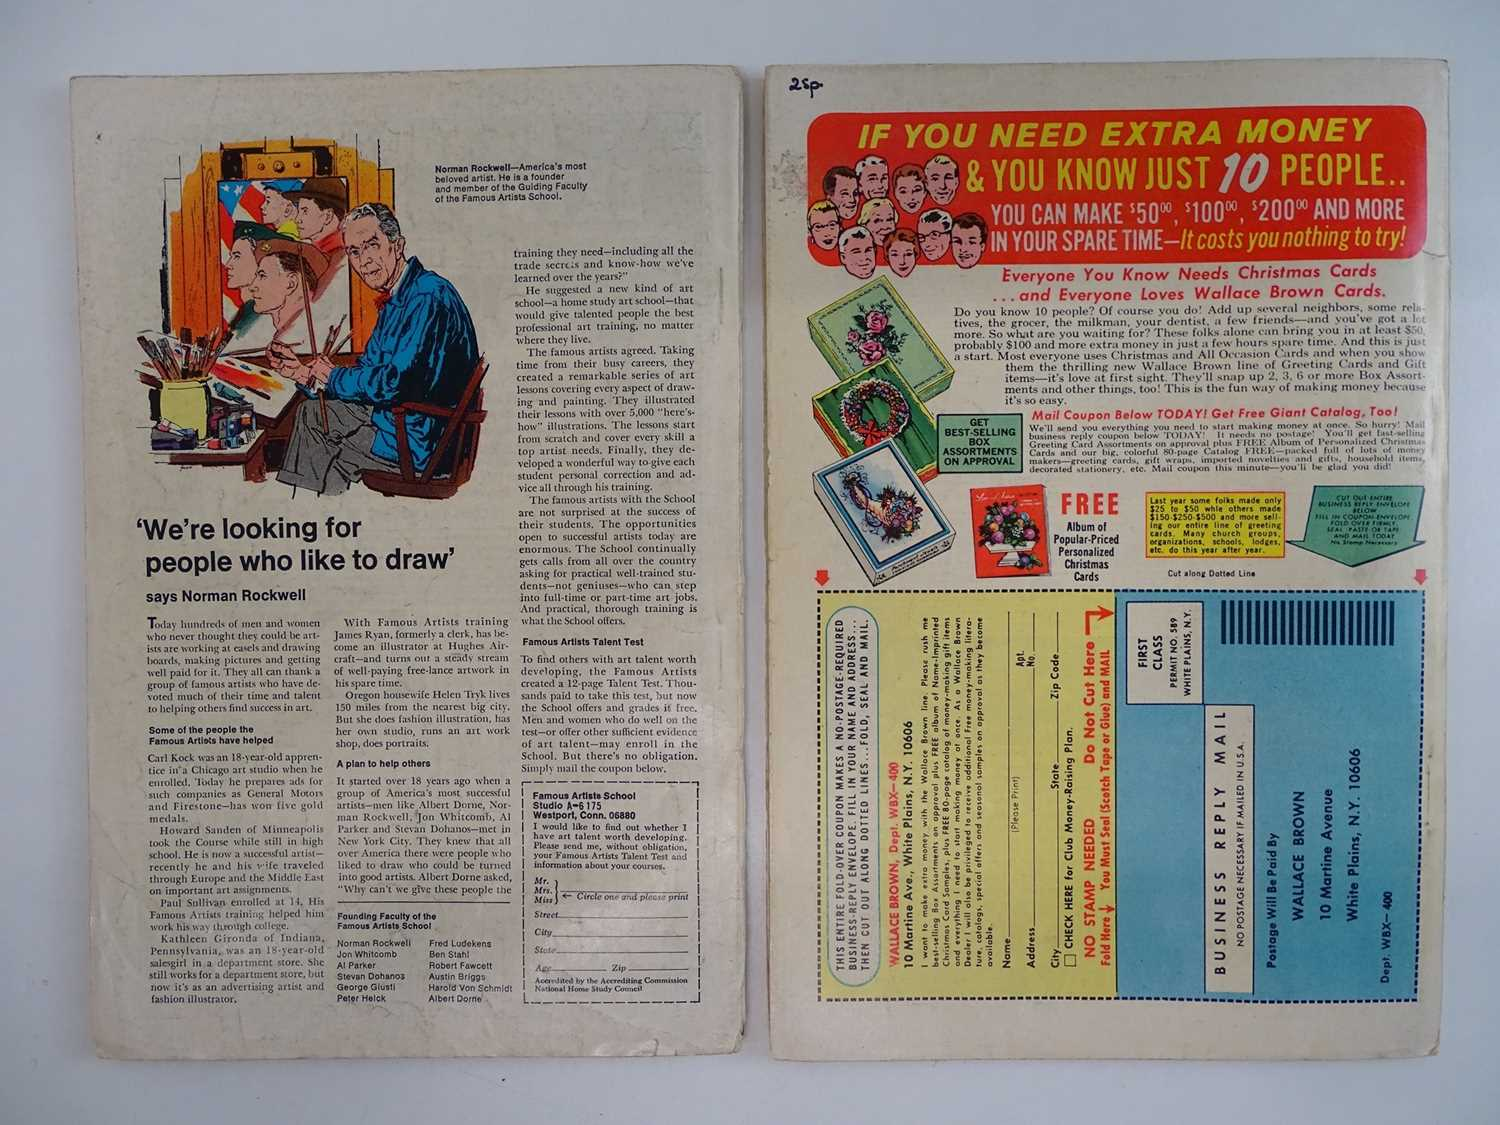 AMAZING SPIDER-MAN: KING-SIZE SPECIAL #6 & 7 - (1968 - MARVEL - UK Cover Price) - King-Size Specials - Image 2 of 2